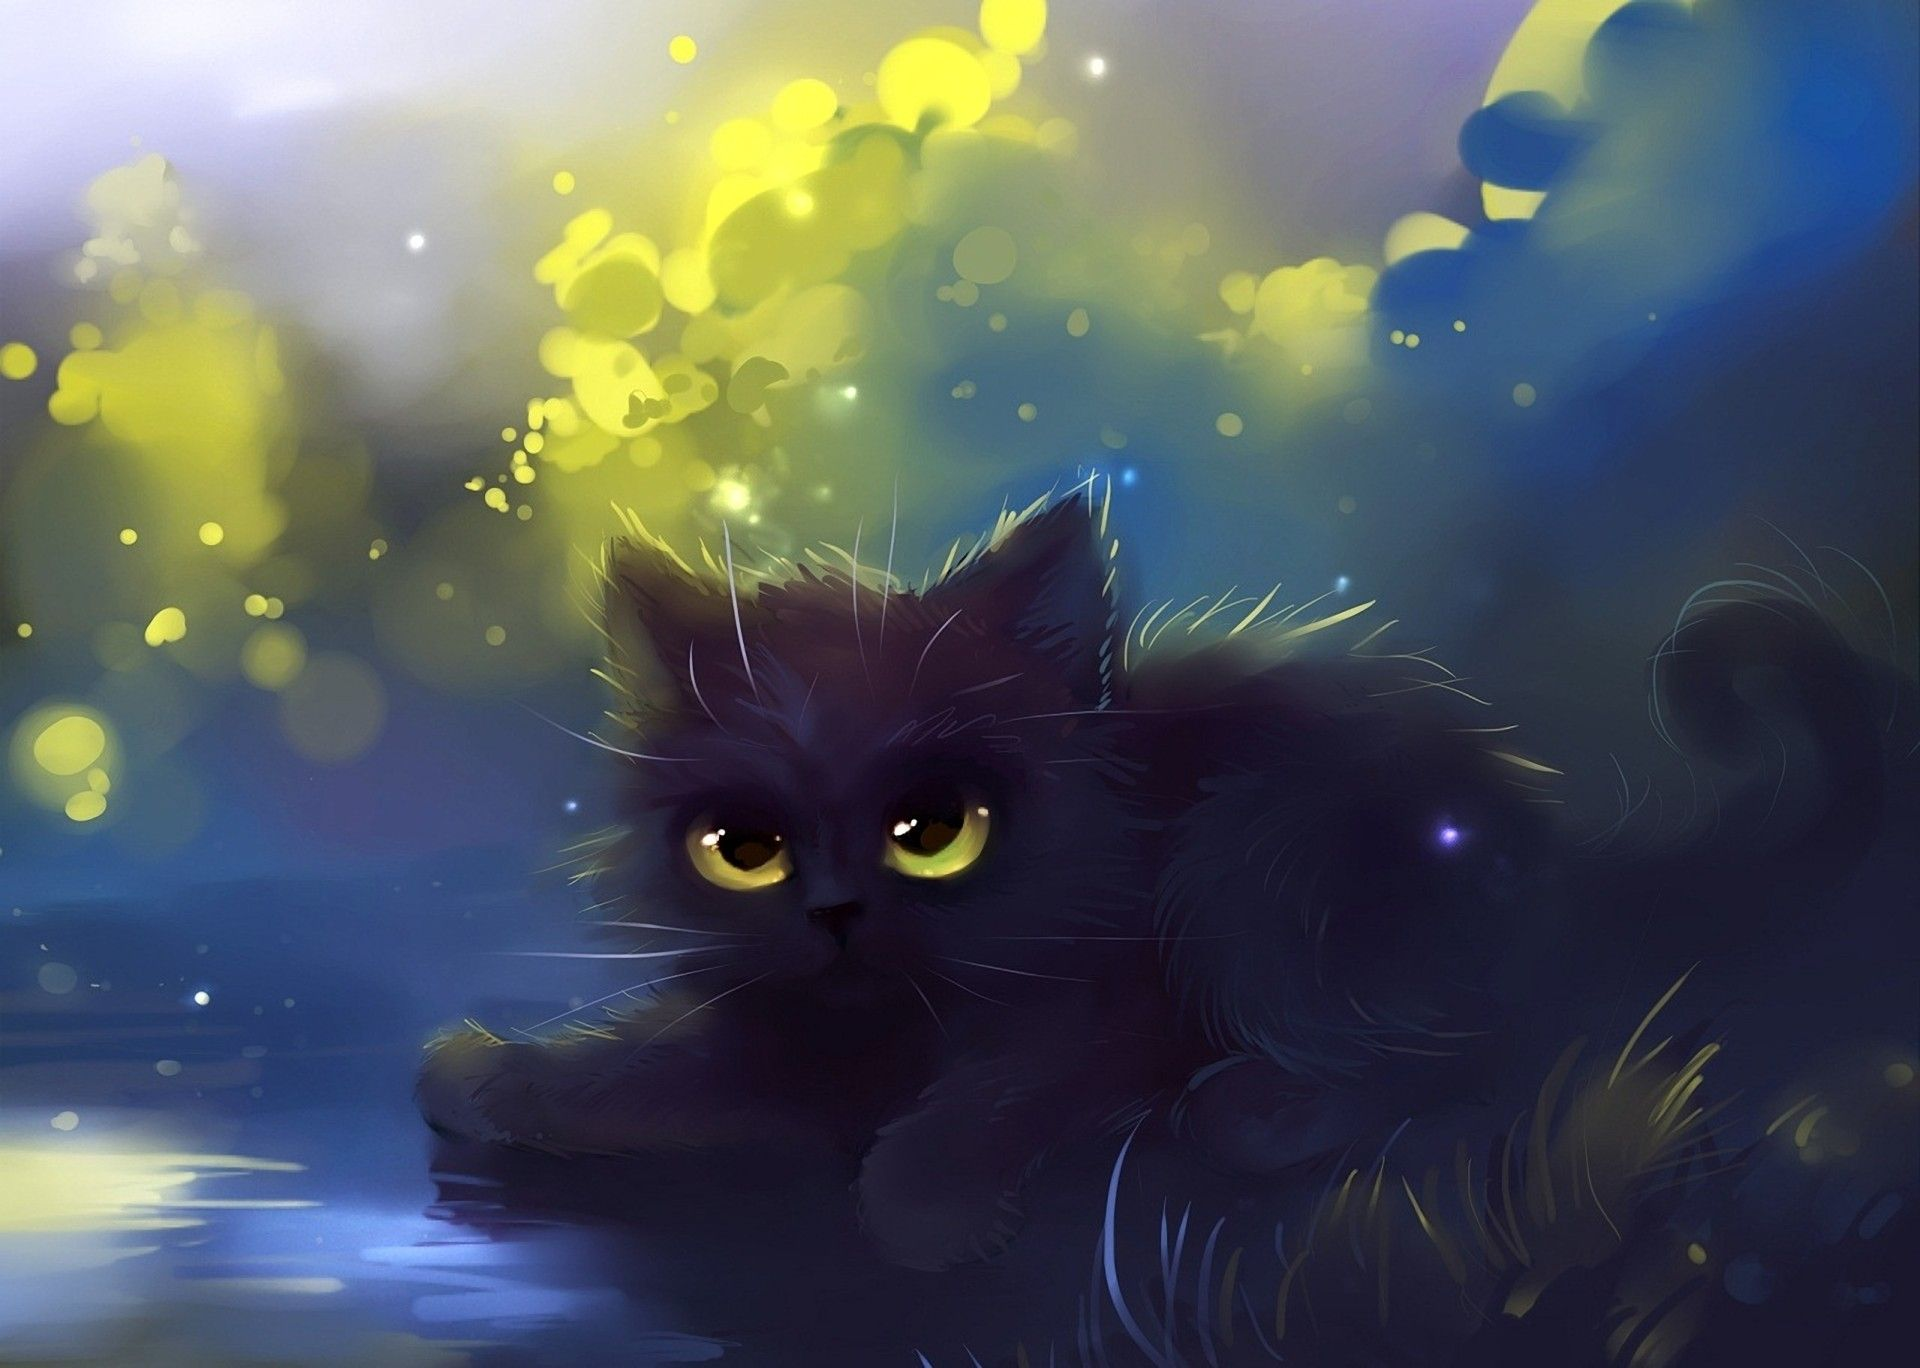 Anime Cat Wallpaper 63 Images Cute Anime Cat Anime Kitten